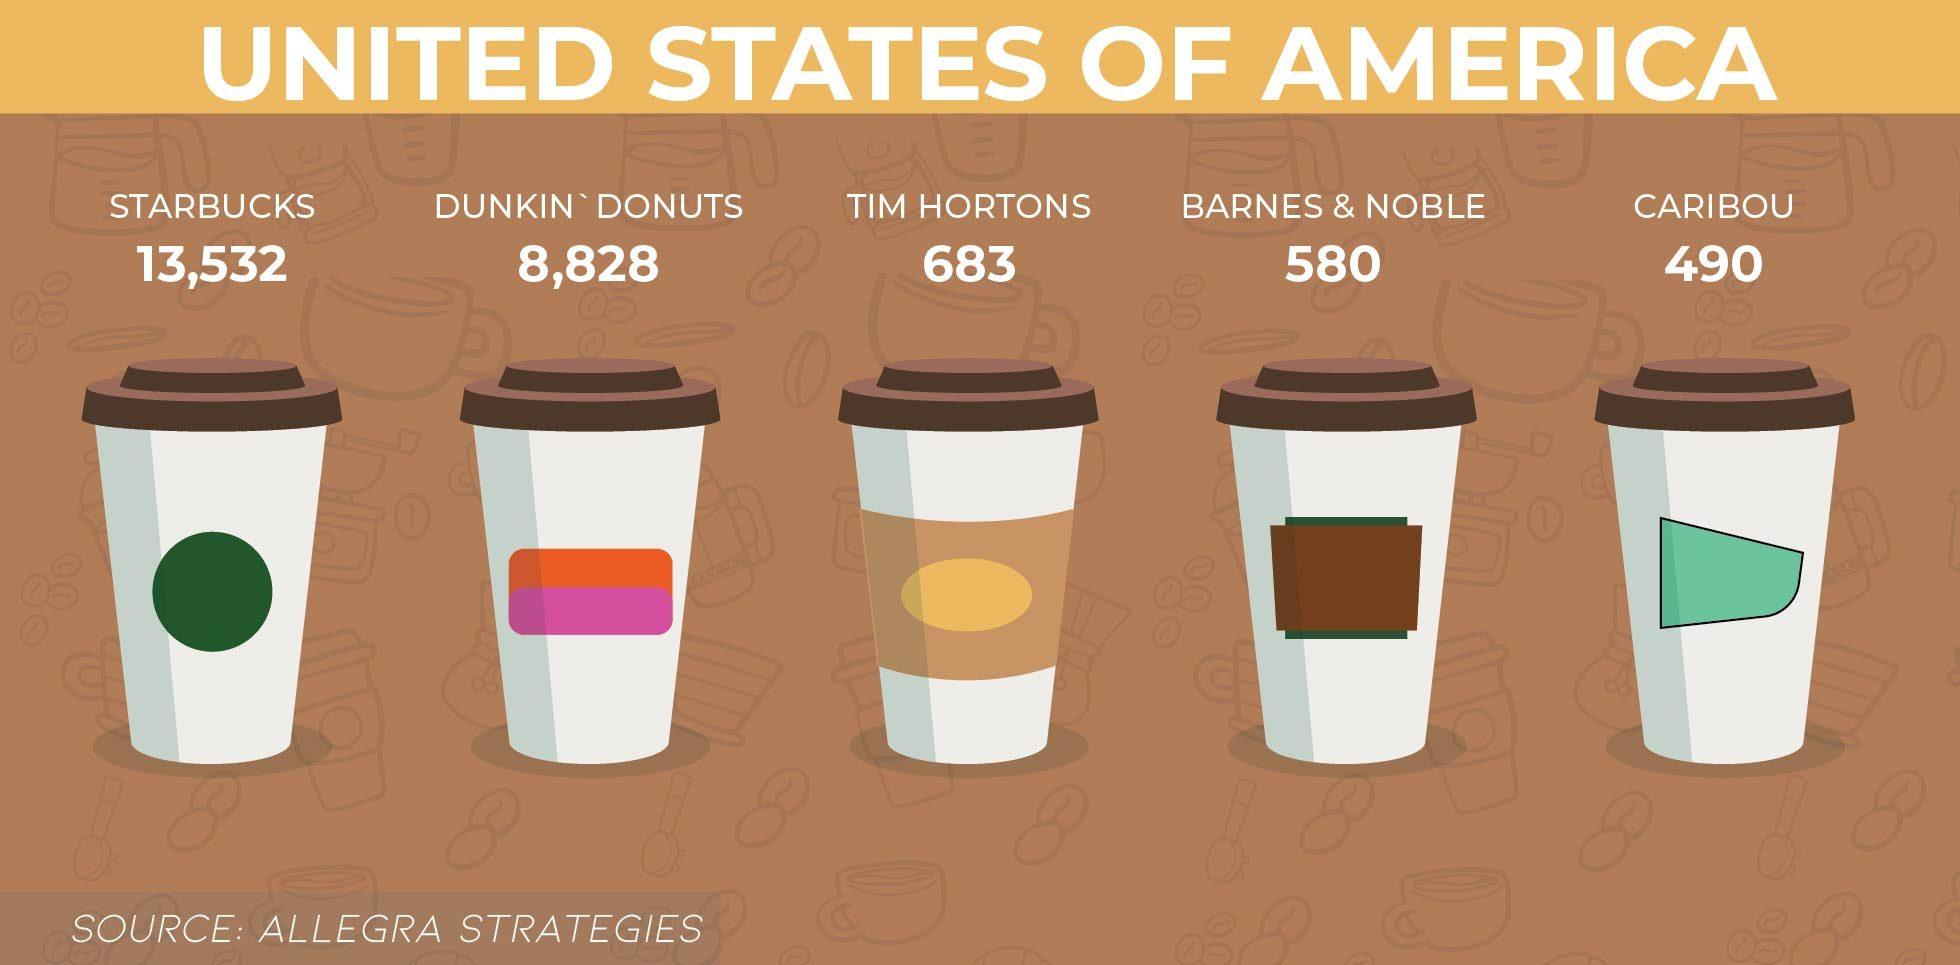 Top Coffee Brands in the United States